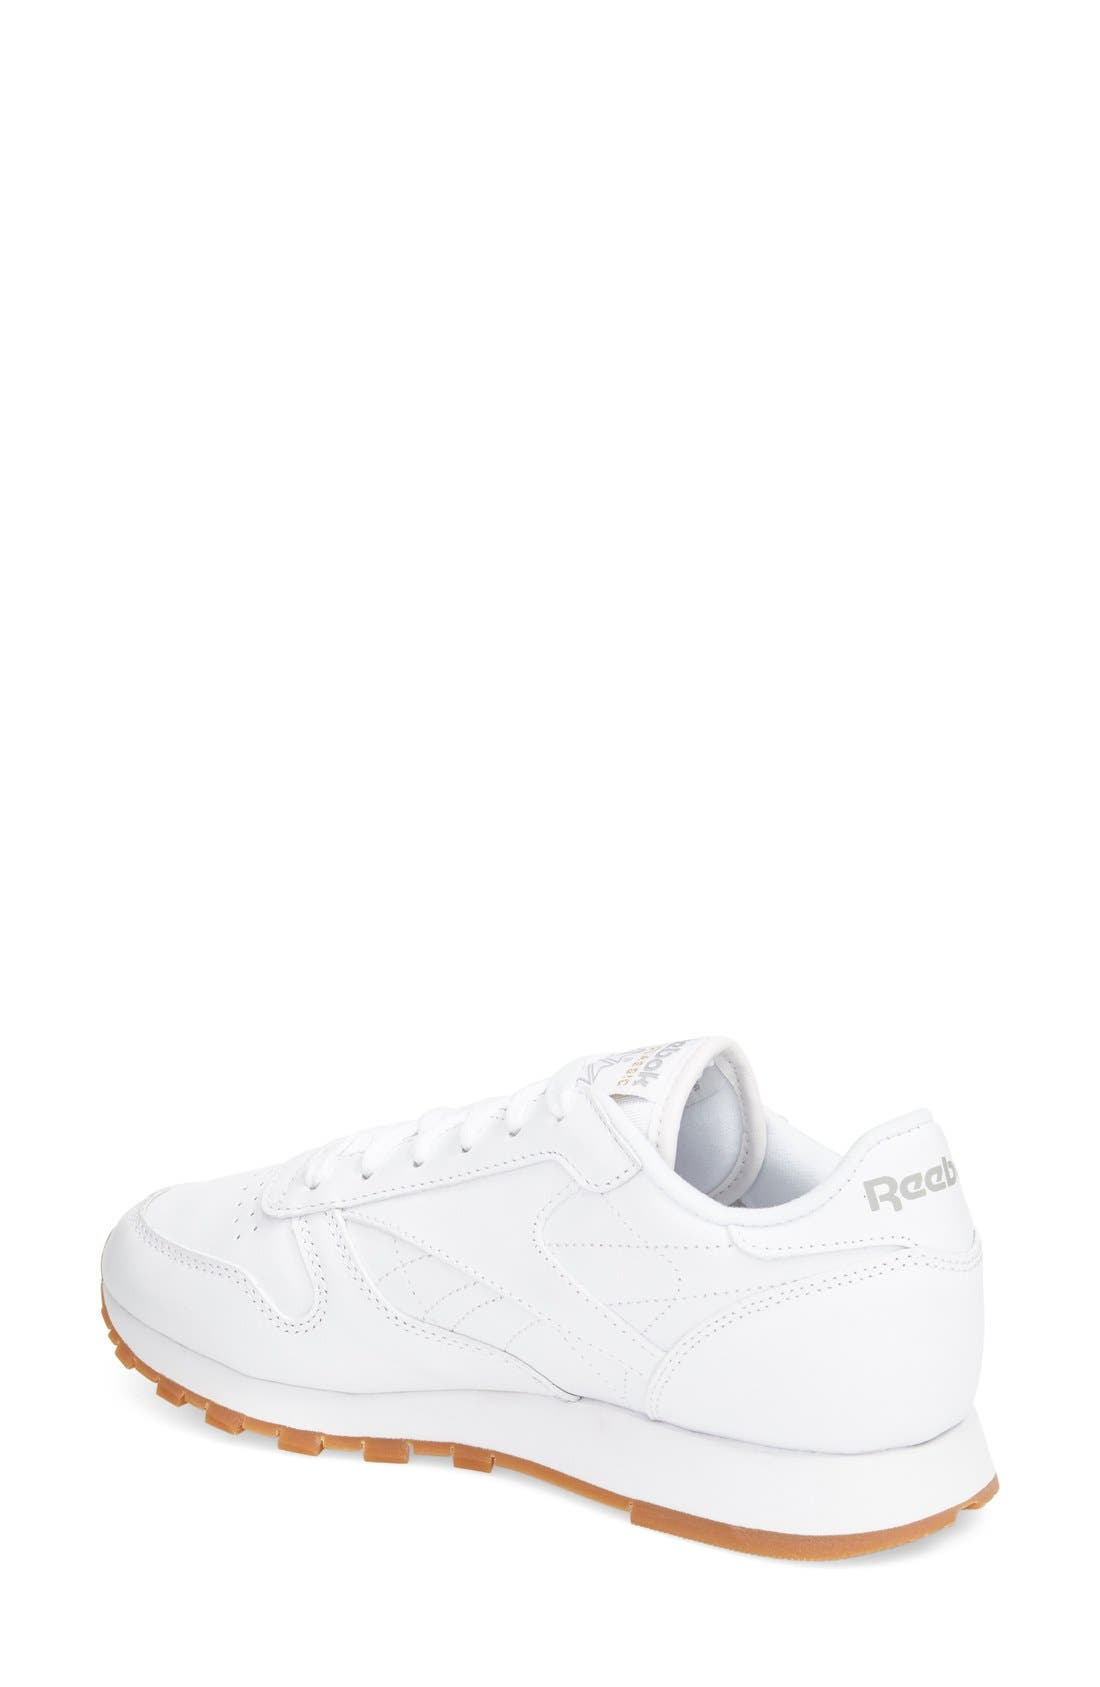 REEBOK,                             Classic Leather Sneaker,                             Alternate thumbnail 8, color,                             US-WHITE/ GUM